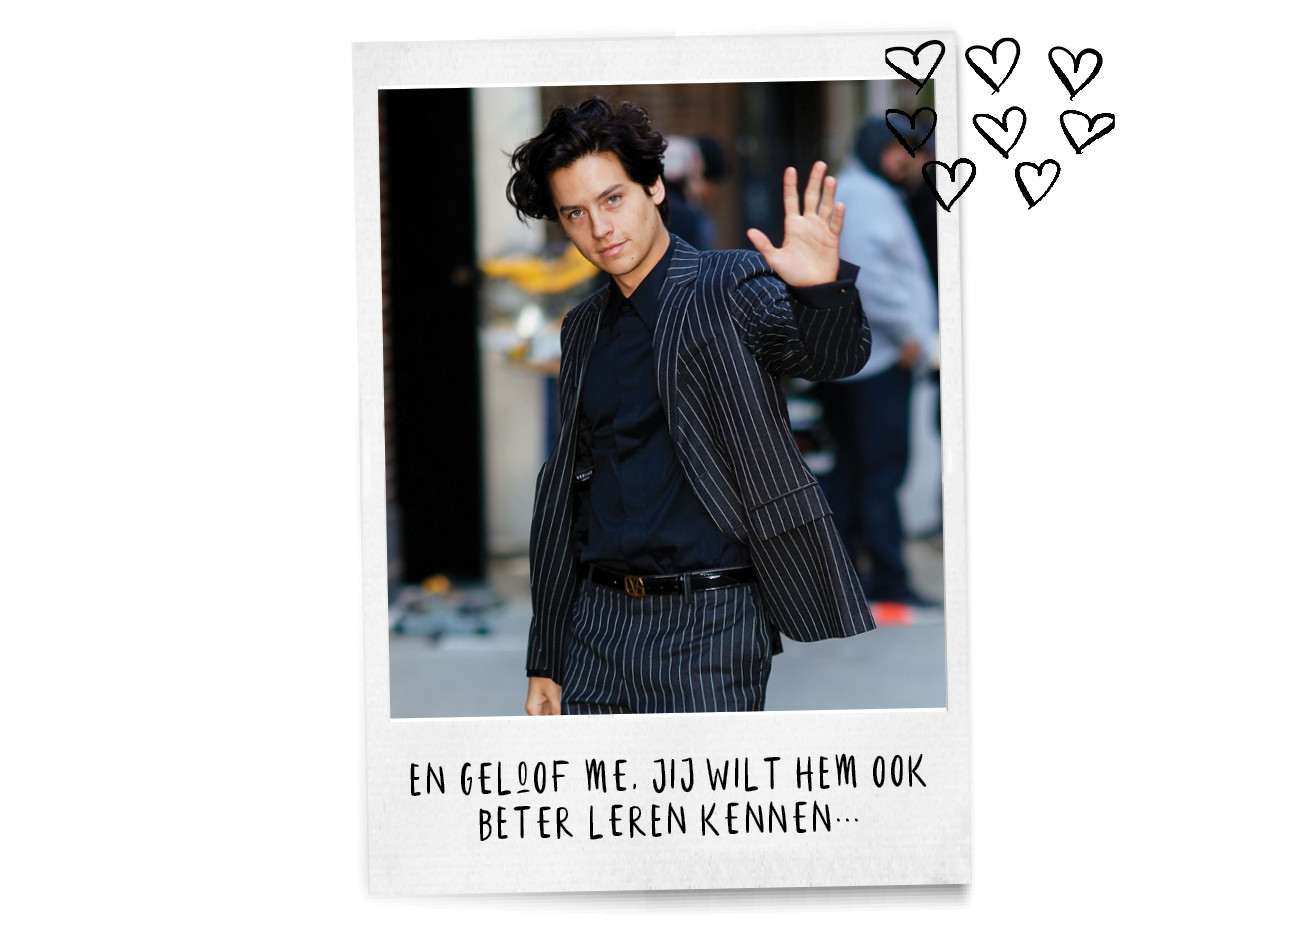 COLE SPROUSE WAVING ON STREETS SUIT